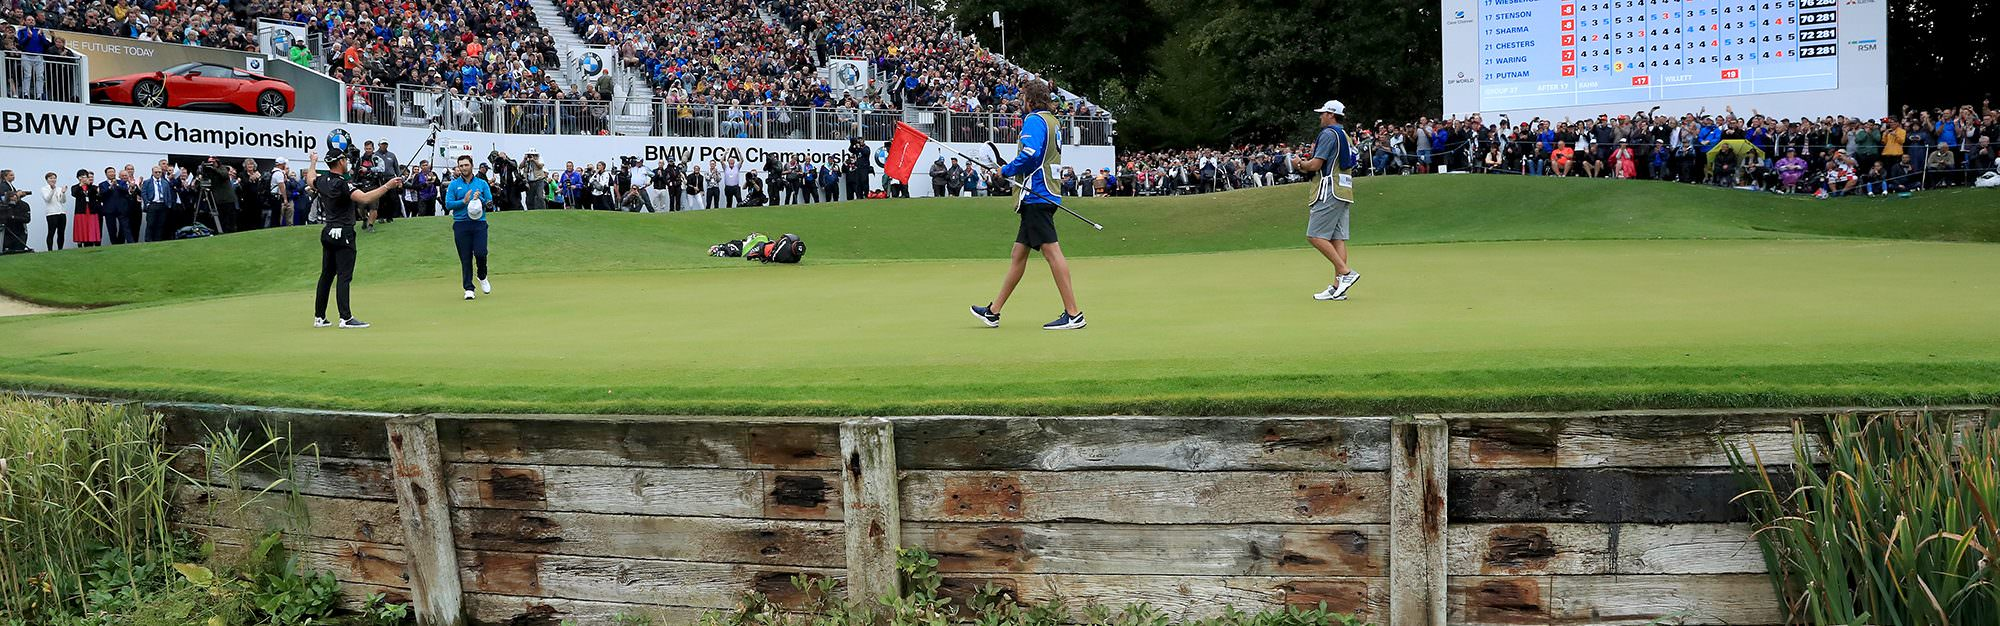 The secrets to winning at Wentworth